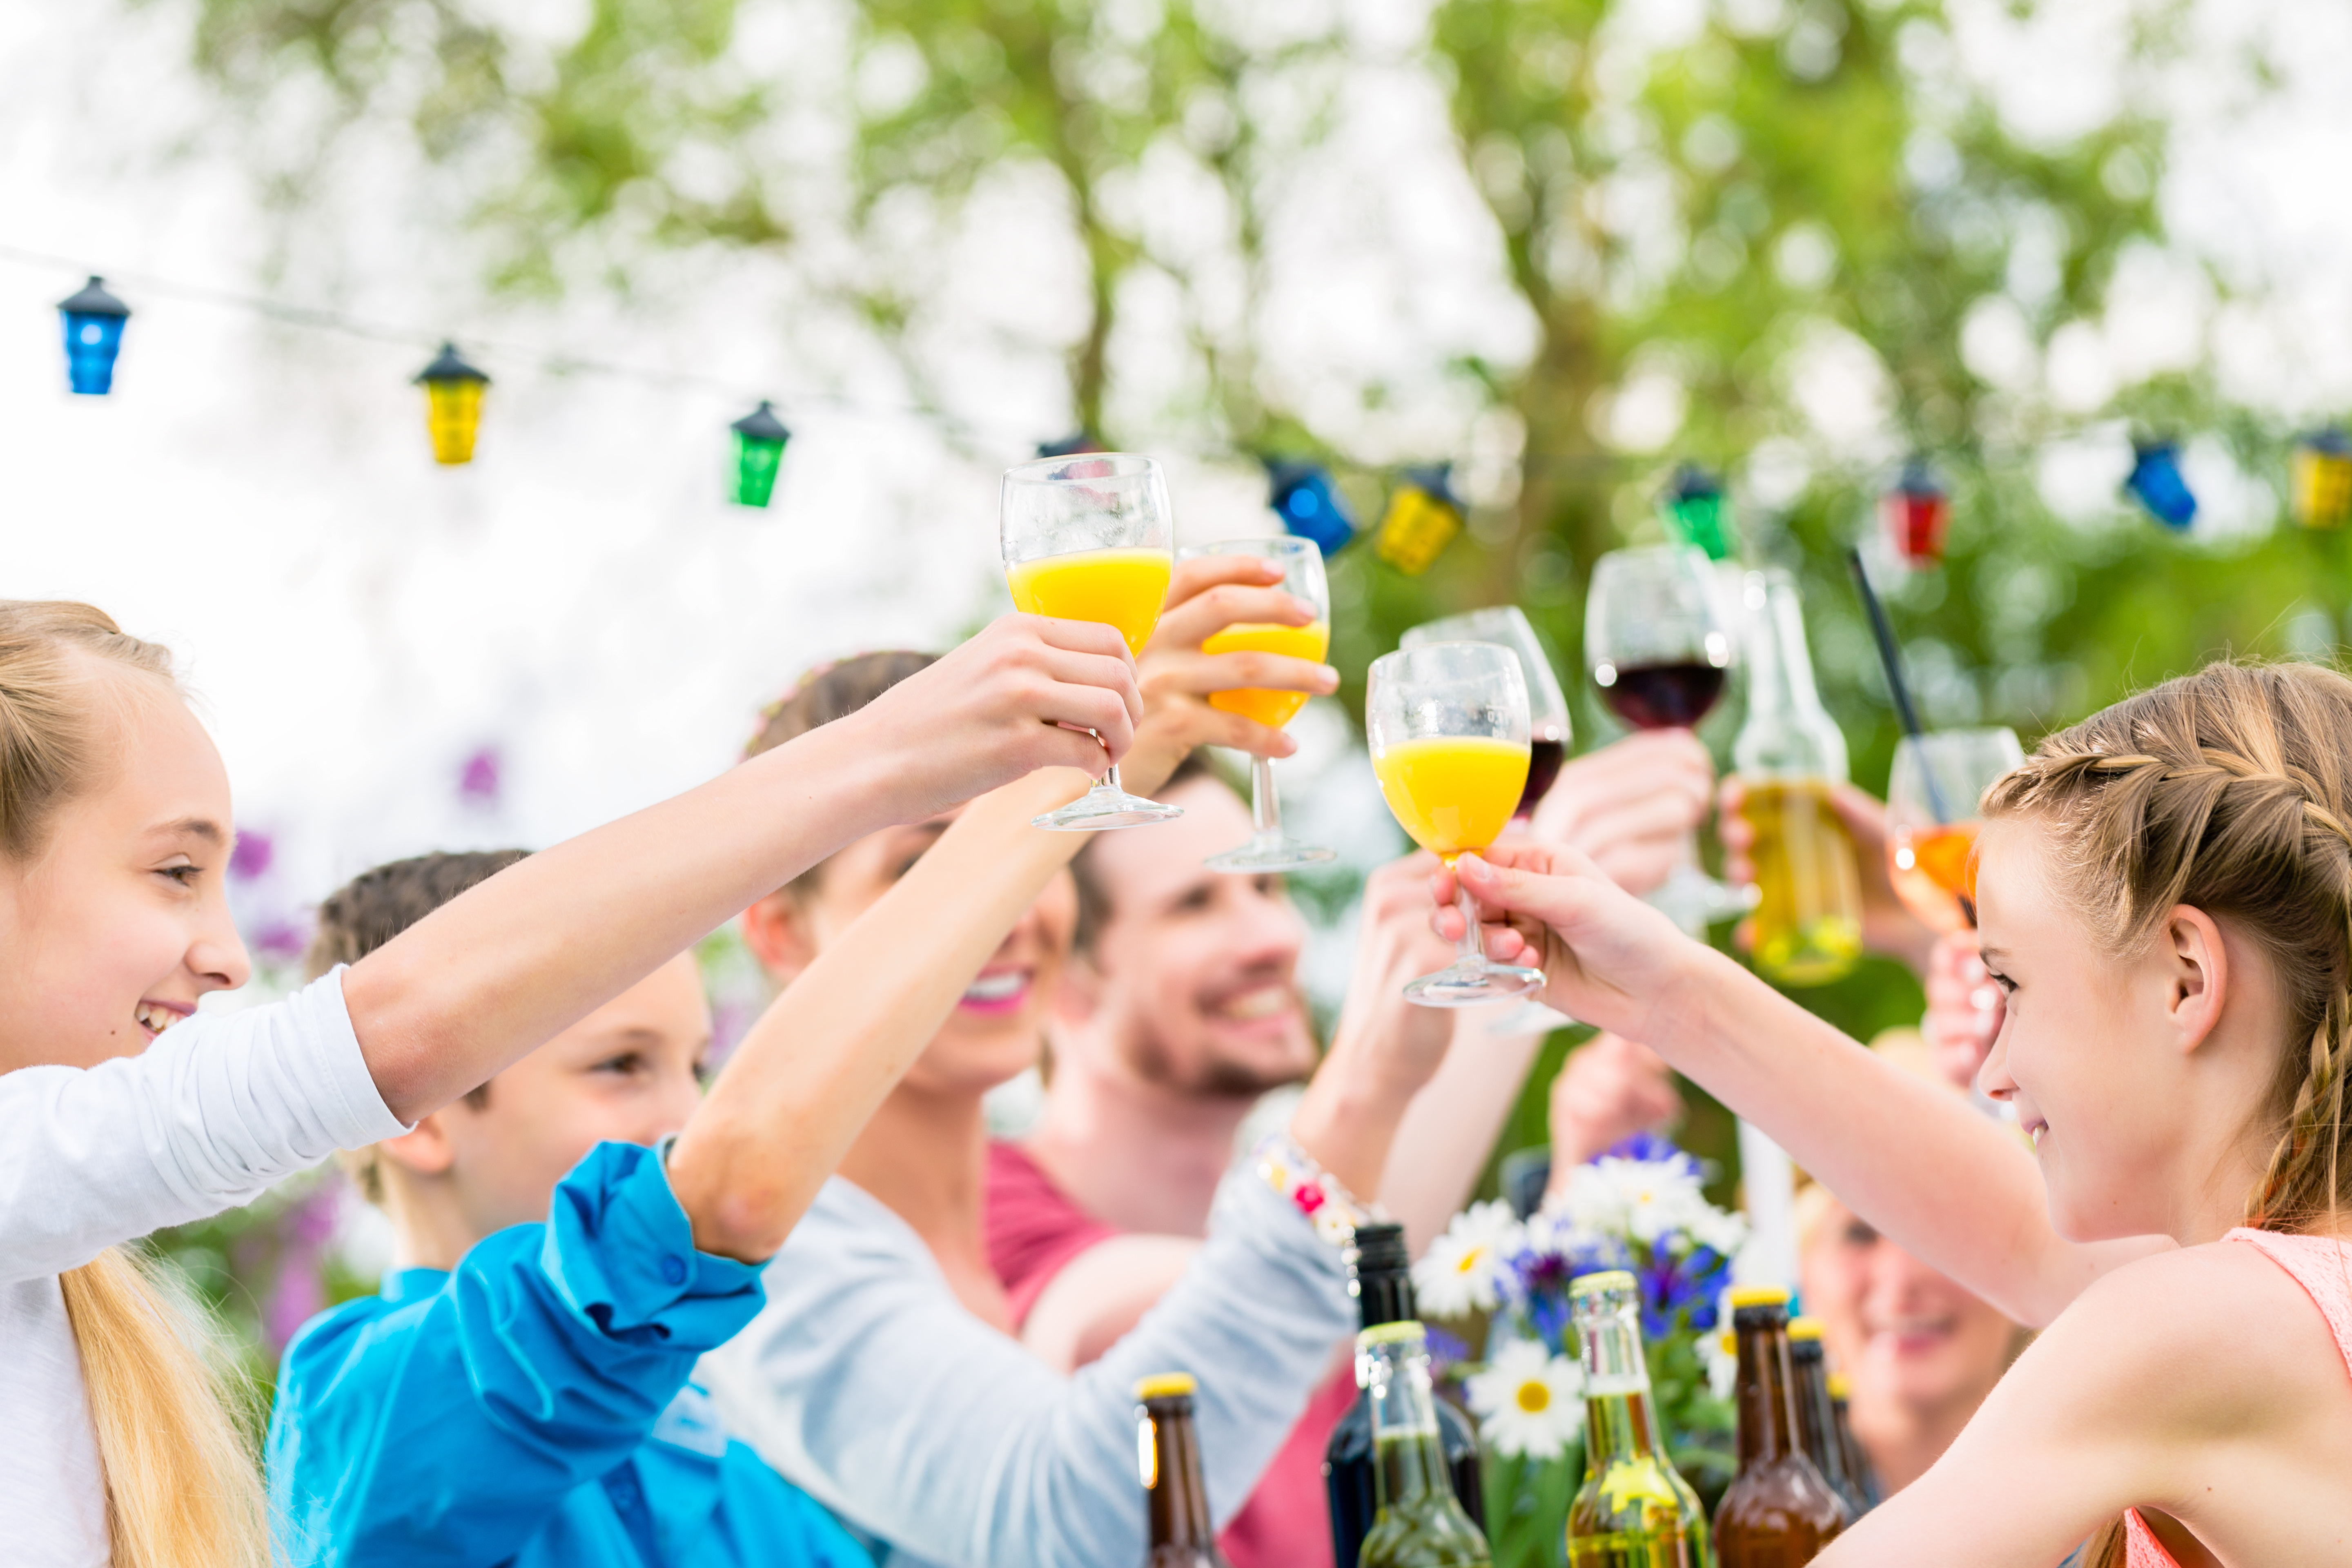 5 Fun Party Items That Will Make Your Event Memorable